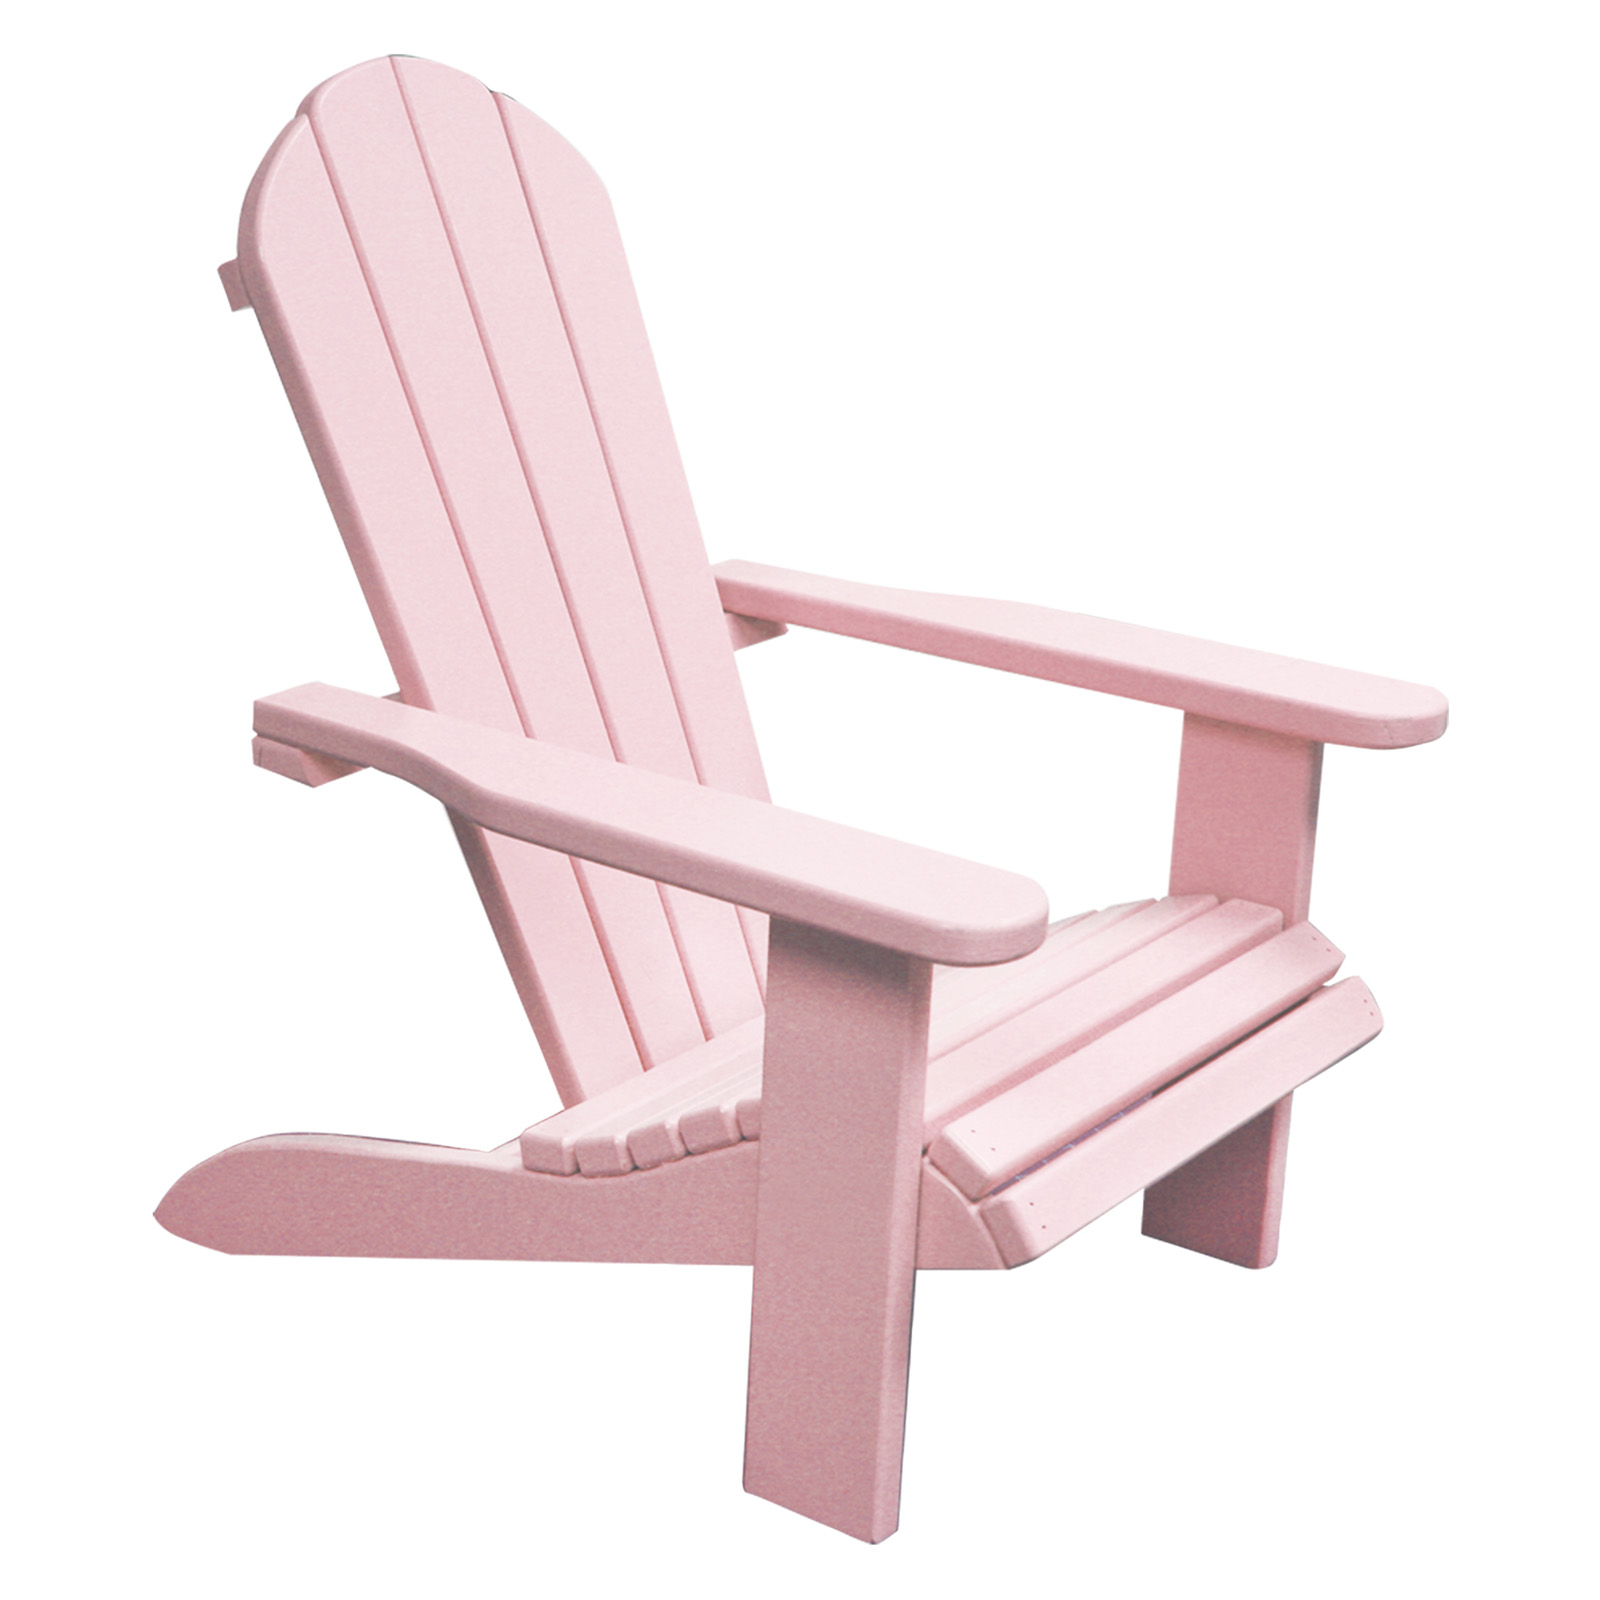 Newco Kids Wooden Outdoor Chair Pink Do Not Use At Hayneedle